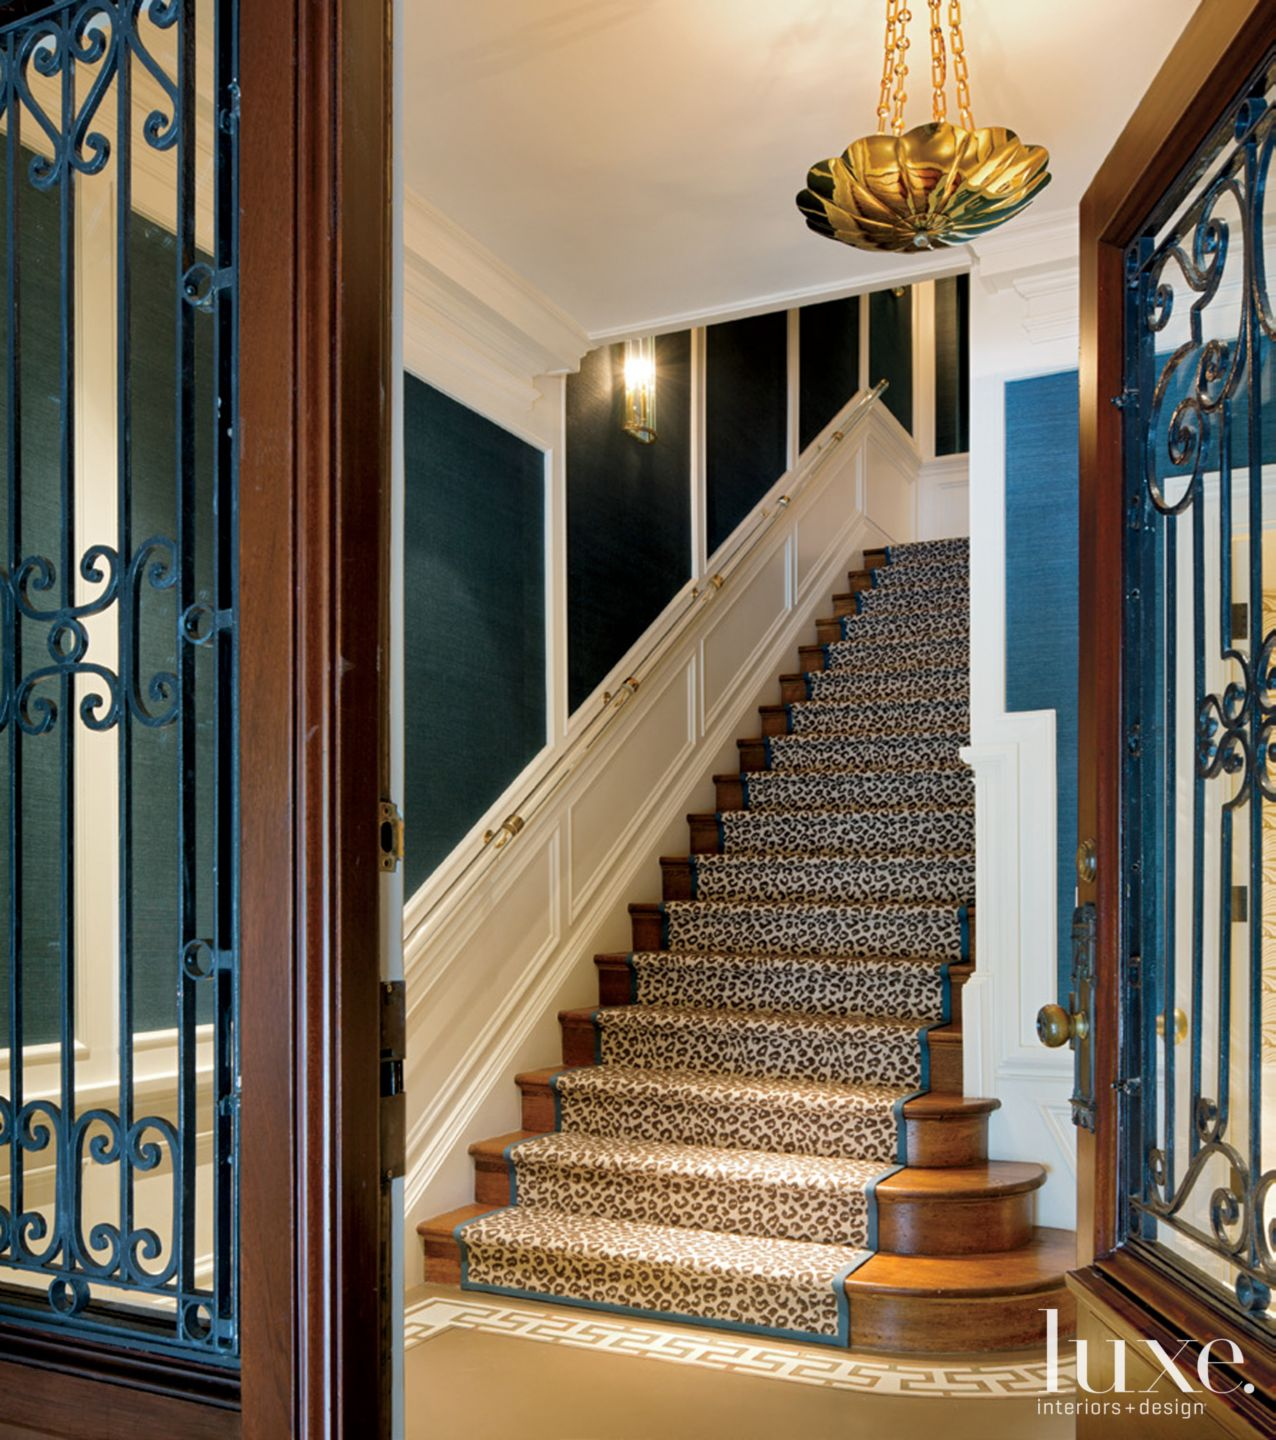 Eclectic Blue Staircase with Animal Print Runner